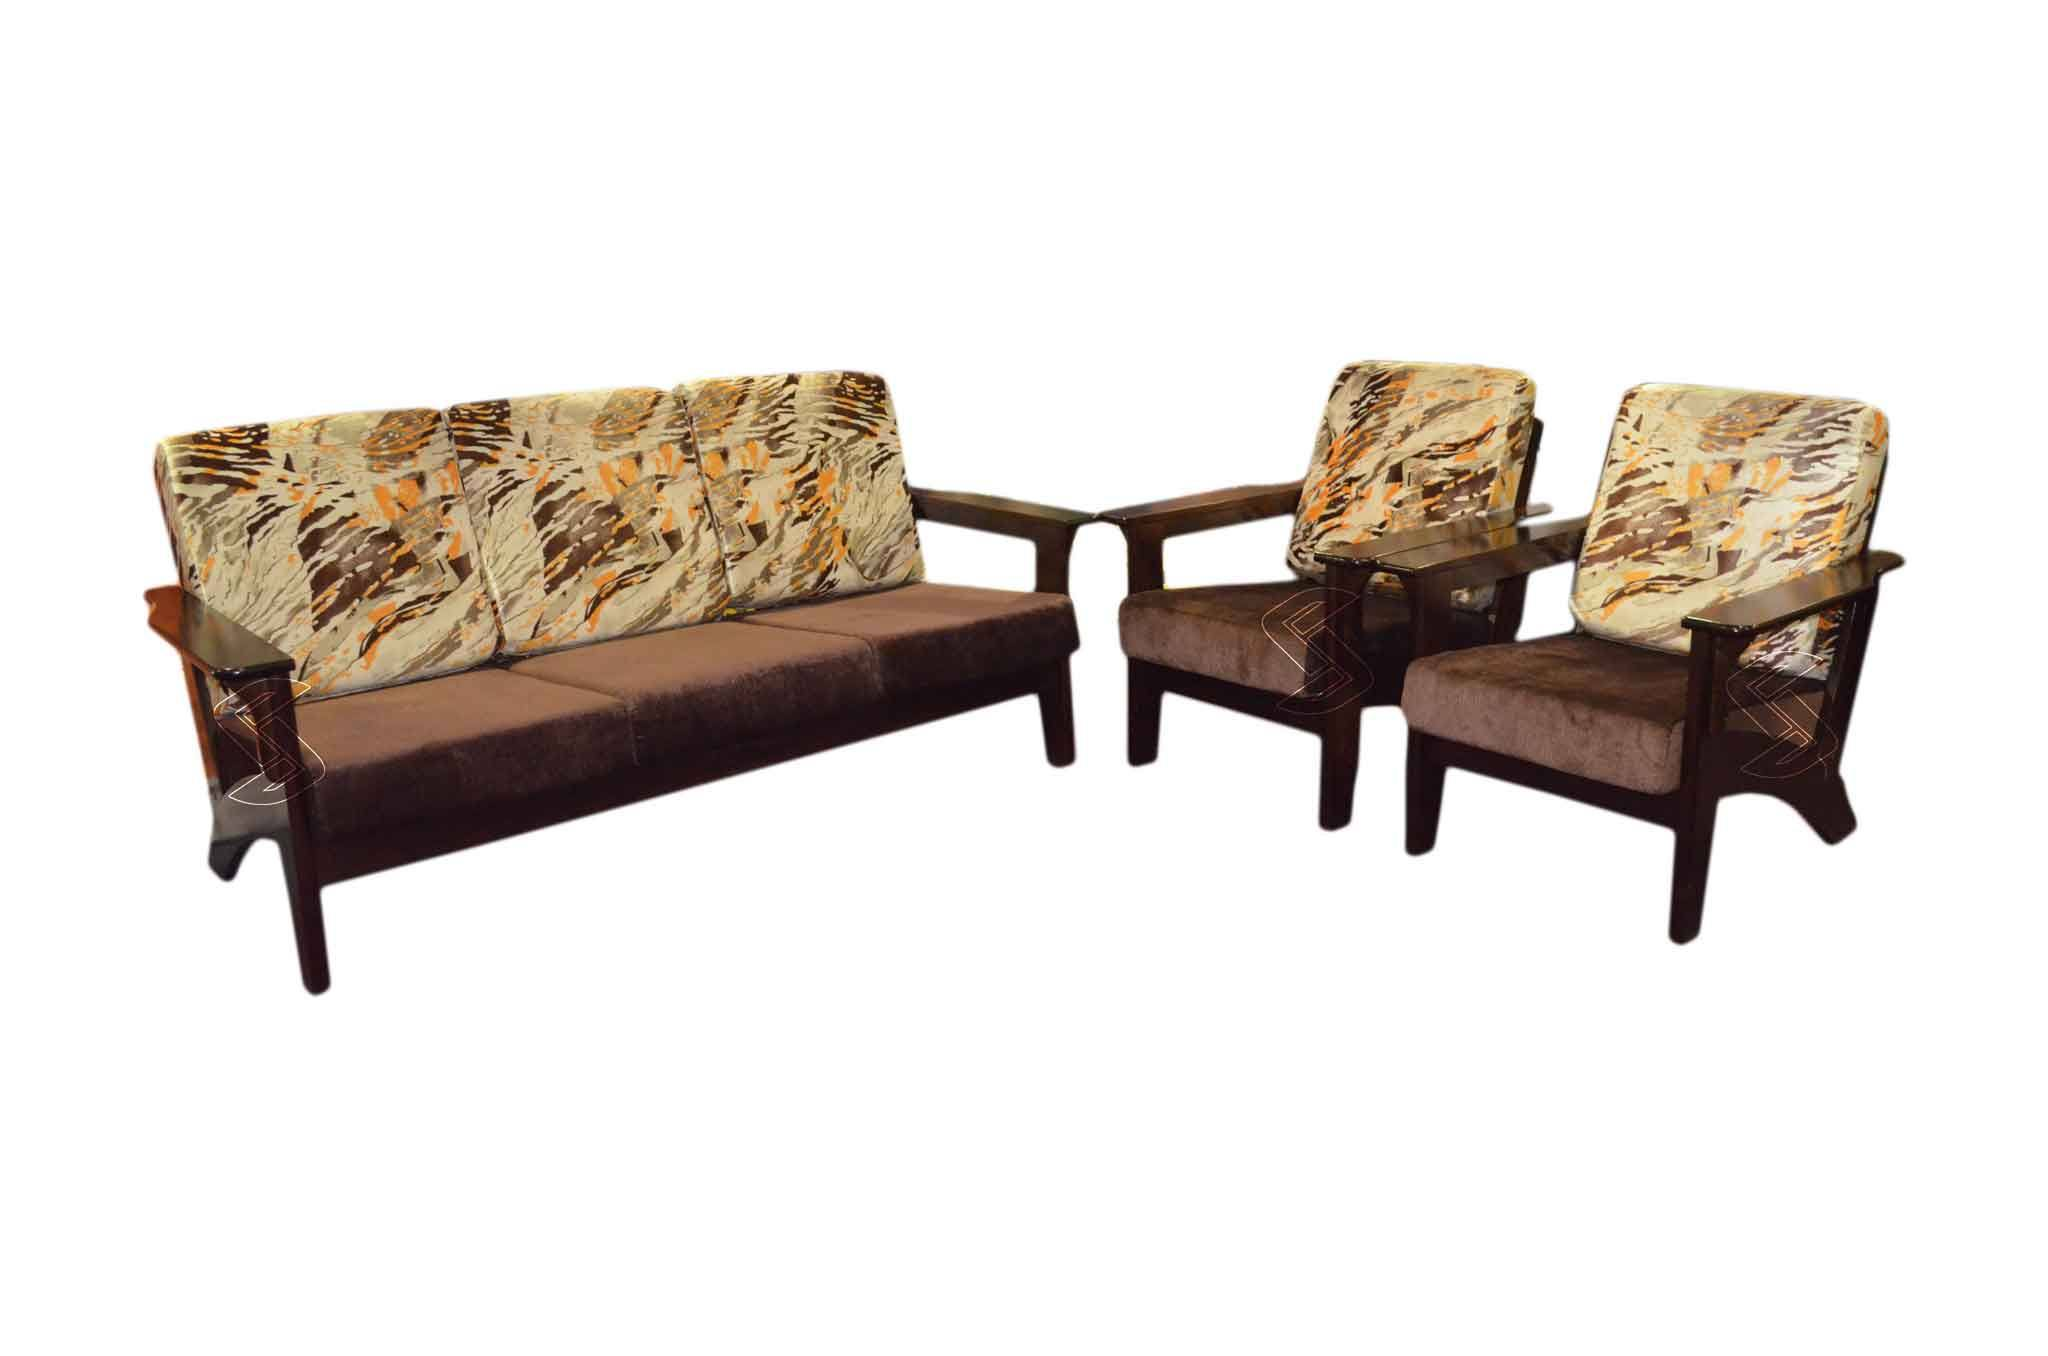 Sofa Set Second Sale In Hyderabad Second Hand Wooden Sofa Set In Hyderabad Baci Living Room